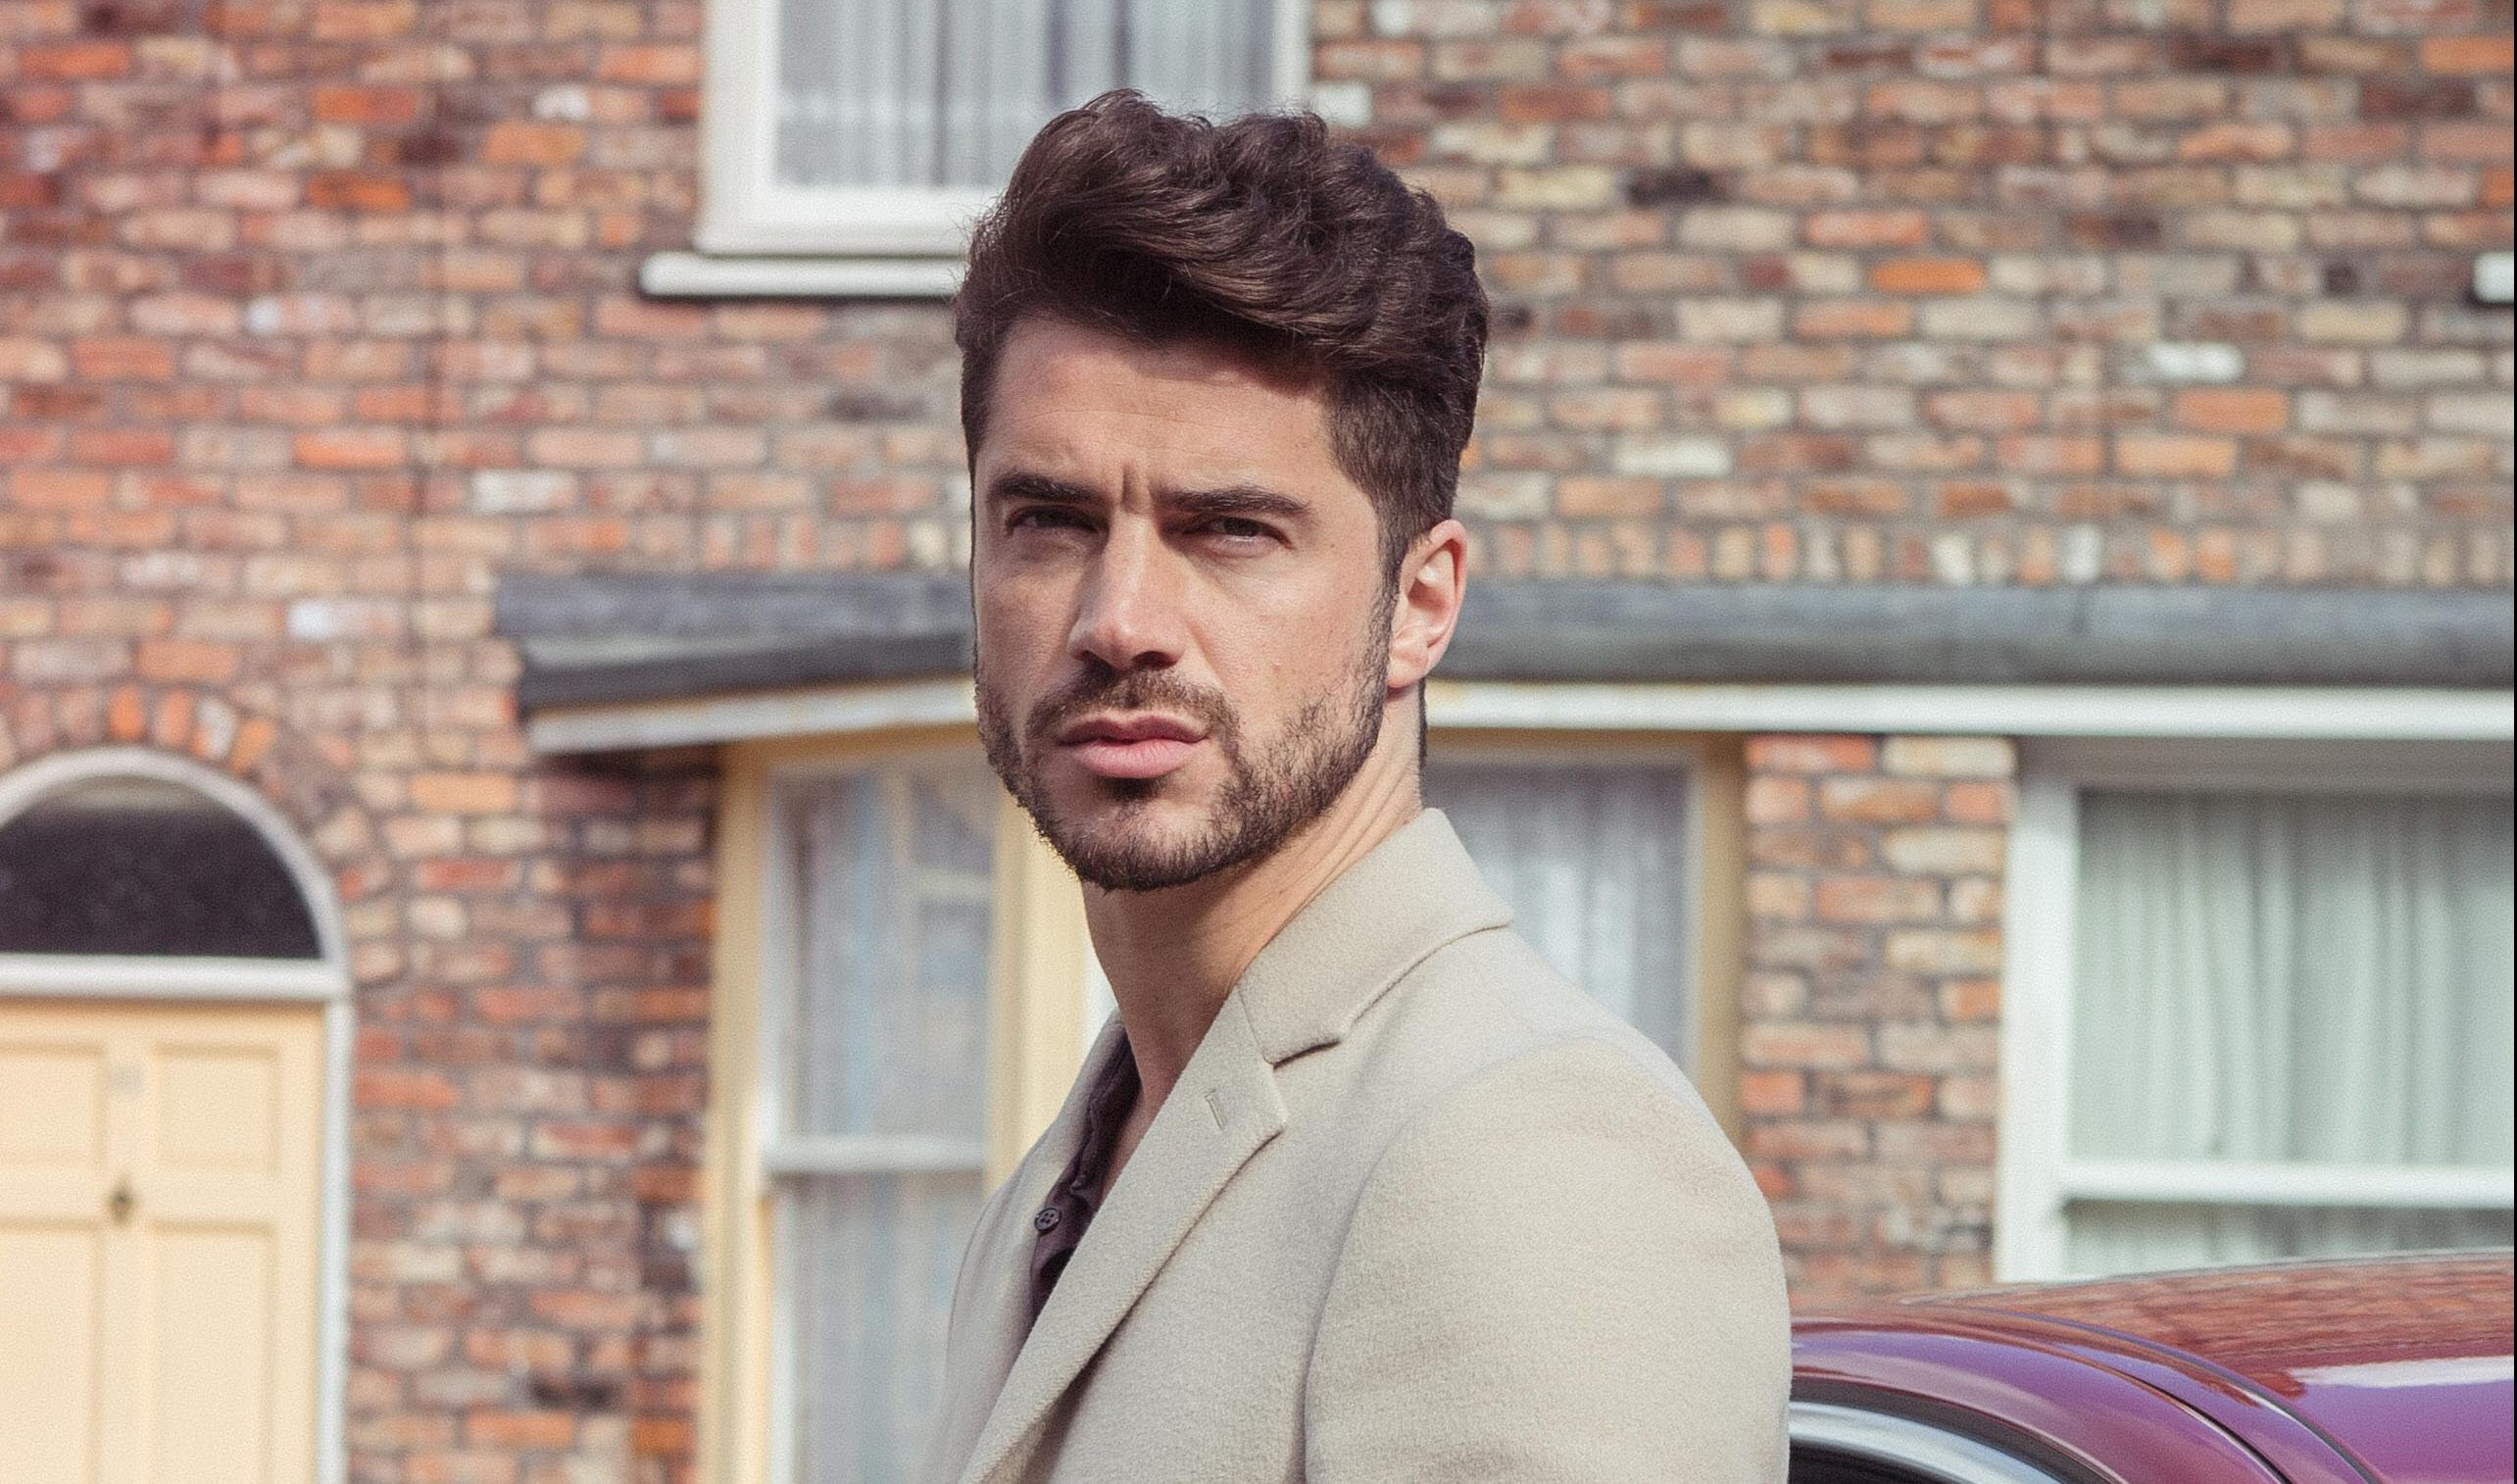 FROM ITV STRICT EMBARGO Tuesday 8 November 2016 Coronation Street - Ep 9035 Wednesday 16 November 2016 A flashy new Jaguar sweeps onto Coronation Street and parks outside Underworld. Adam Barlow [SAM ROBERTSON] steps out Picture contact: david.crook@itv.com on 0161 952 6214 Photographer - Mark Bruce This photograph is (C) ITV Plc and can only be reproduced for editorial purposes directly in connection with the programme or event mentioned above, or ITV plc. Once made available by ITV plc Picture Desk, this photograph can be reproduced once only up until the transmission [TX] date and no reproduction fee will be charged. Any subsequent usage may incur a fee. This photograph must not be manipulated [excluding basic cropping] in a manner which alters the visual appearance of the person photographed deemed detrimental or inappropriate by ITV plc Picture Desk. This photograph must not be syndicated to any other company, publication or website, or permanently archived, without the